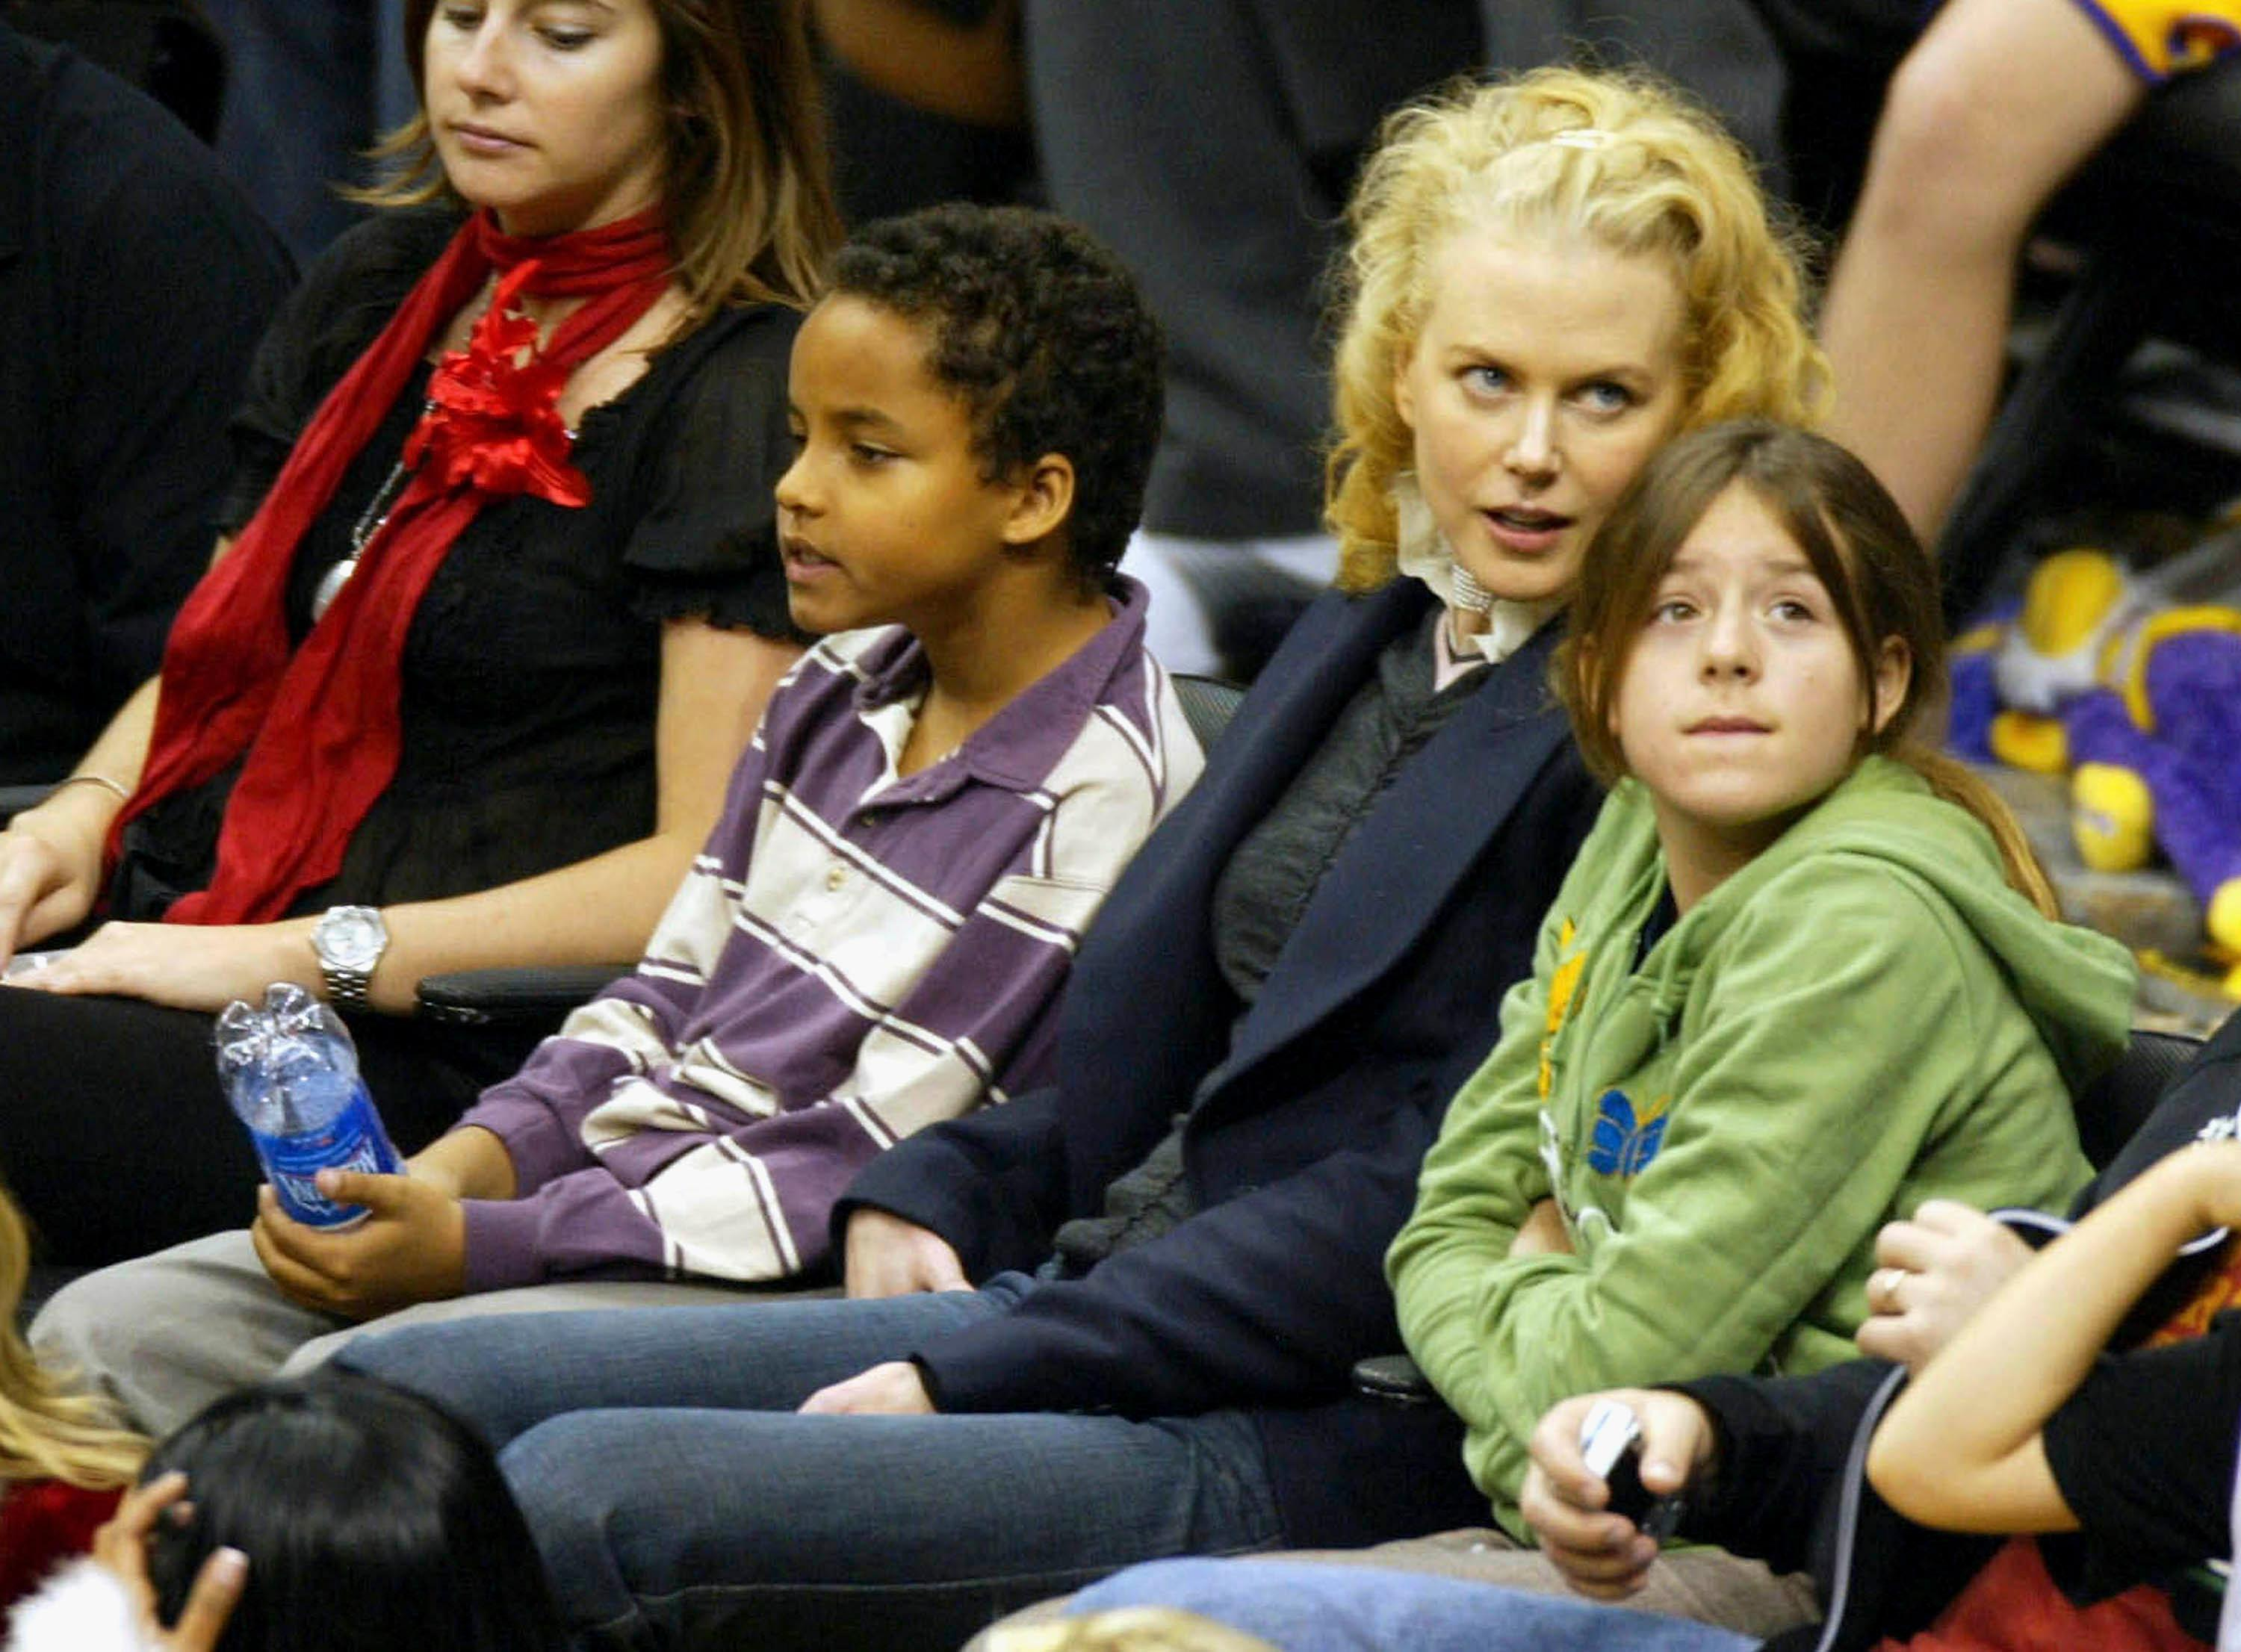 nicole-kidman-kids-big-little-lies-season-2-5-1561394404478.jpg